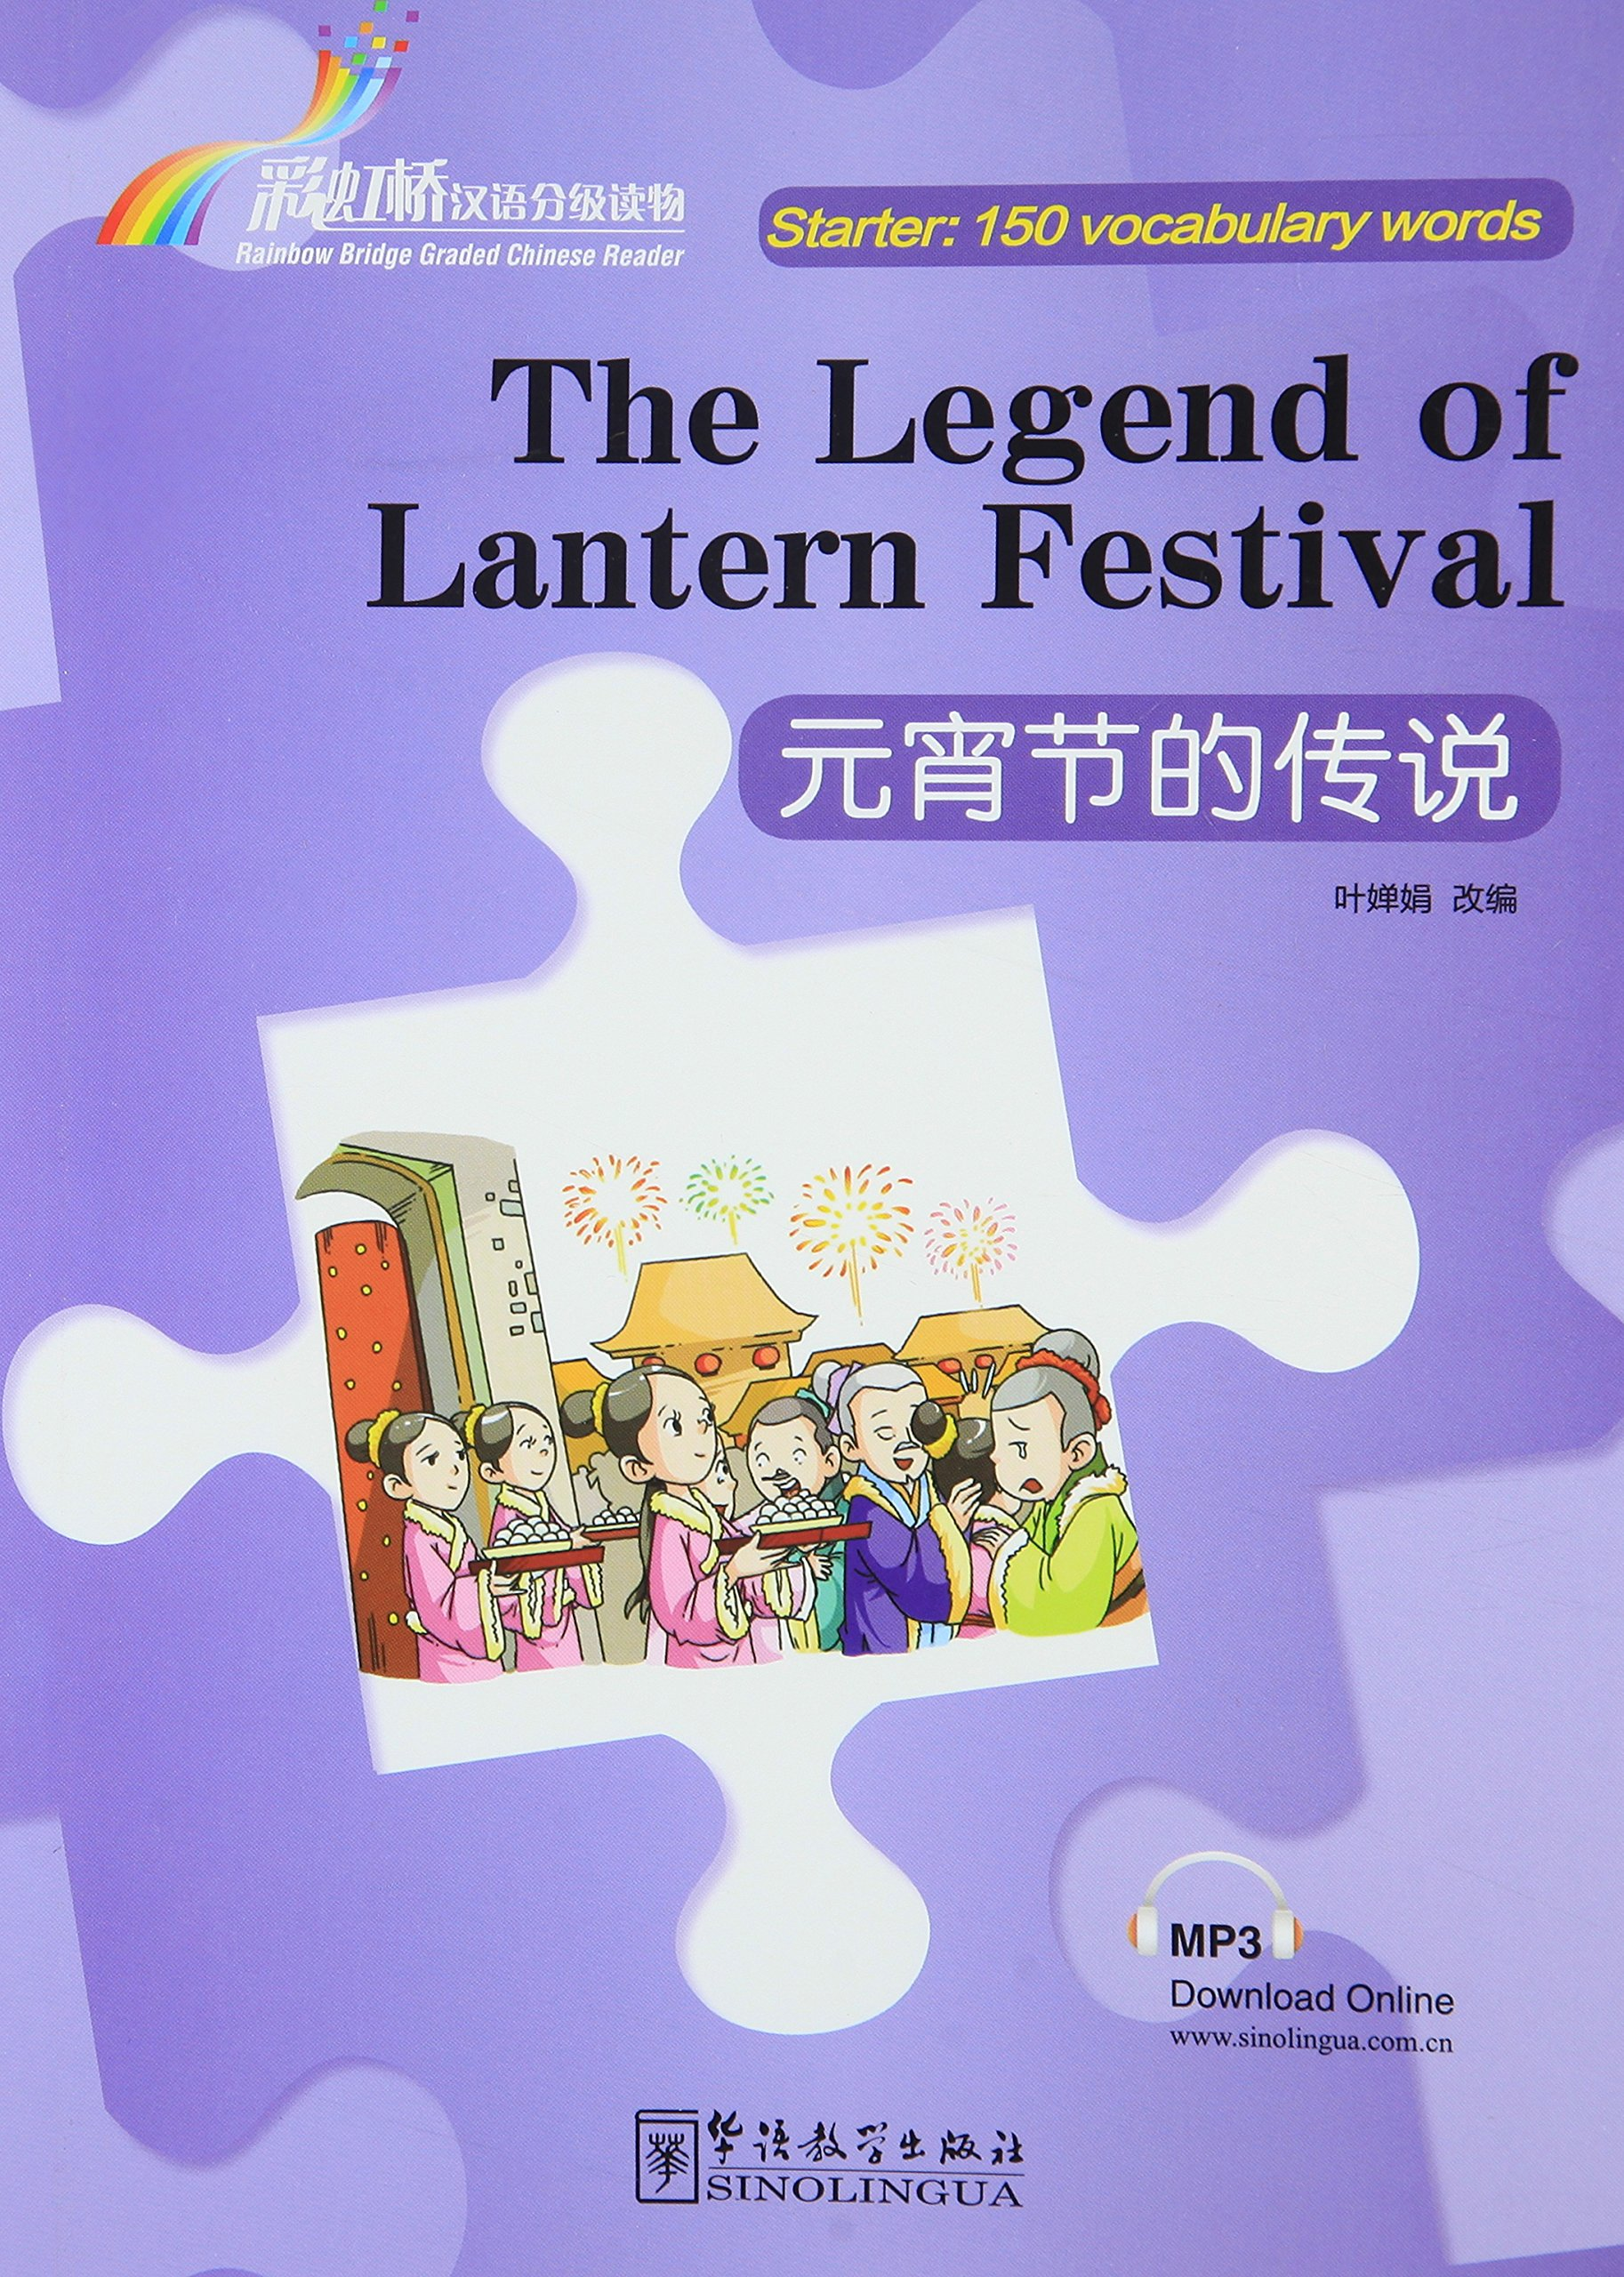 The Legend of Lantern Festival - Rainbow Bridge Graded Chinese Reader, Starter: 150 Vocabulary Words